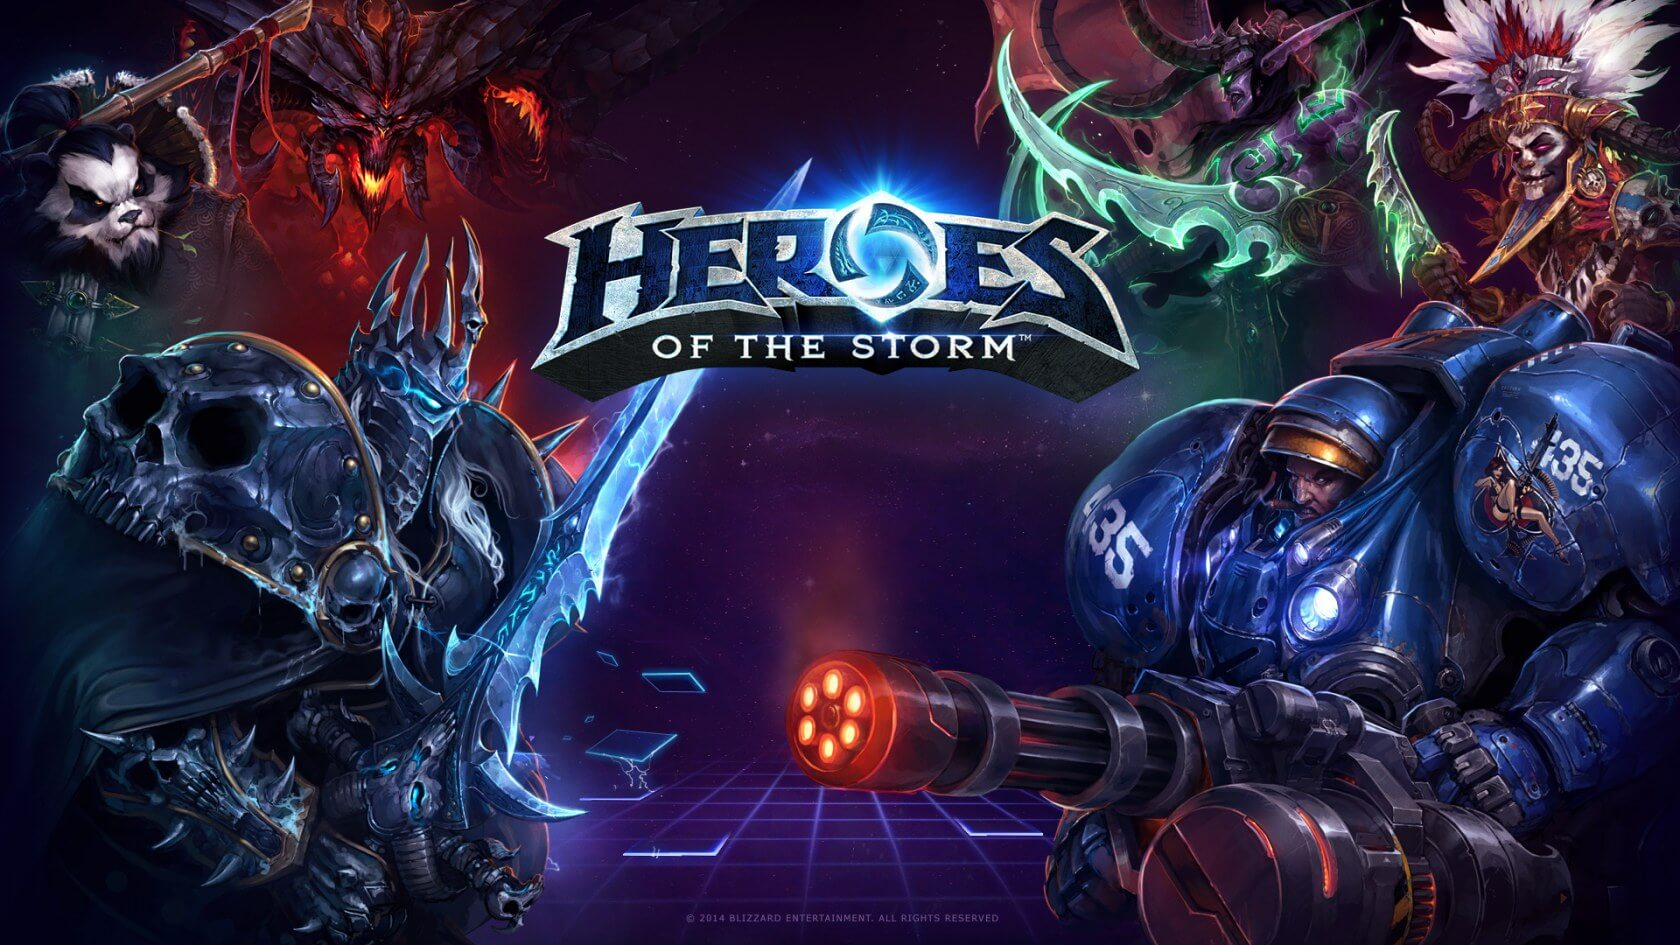 Blizzard's Heroes of the Storm is ditching paid loot boxes once and for all